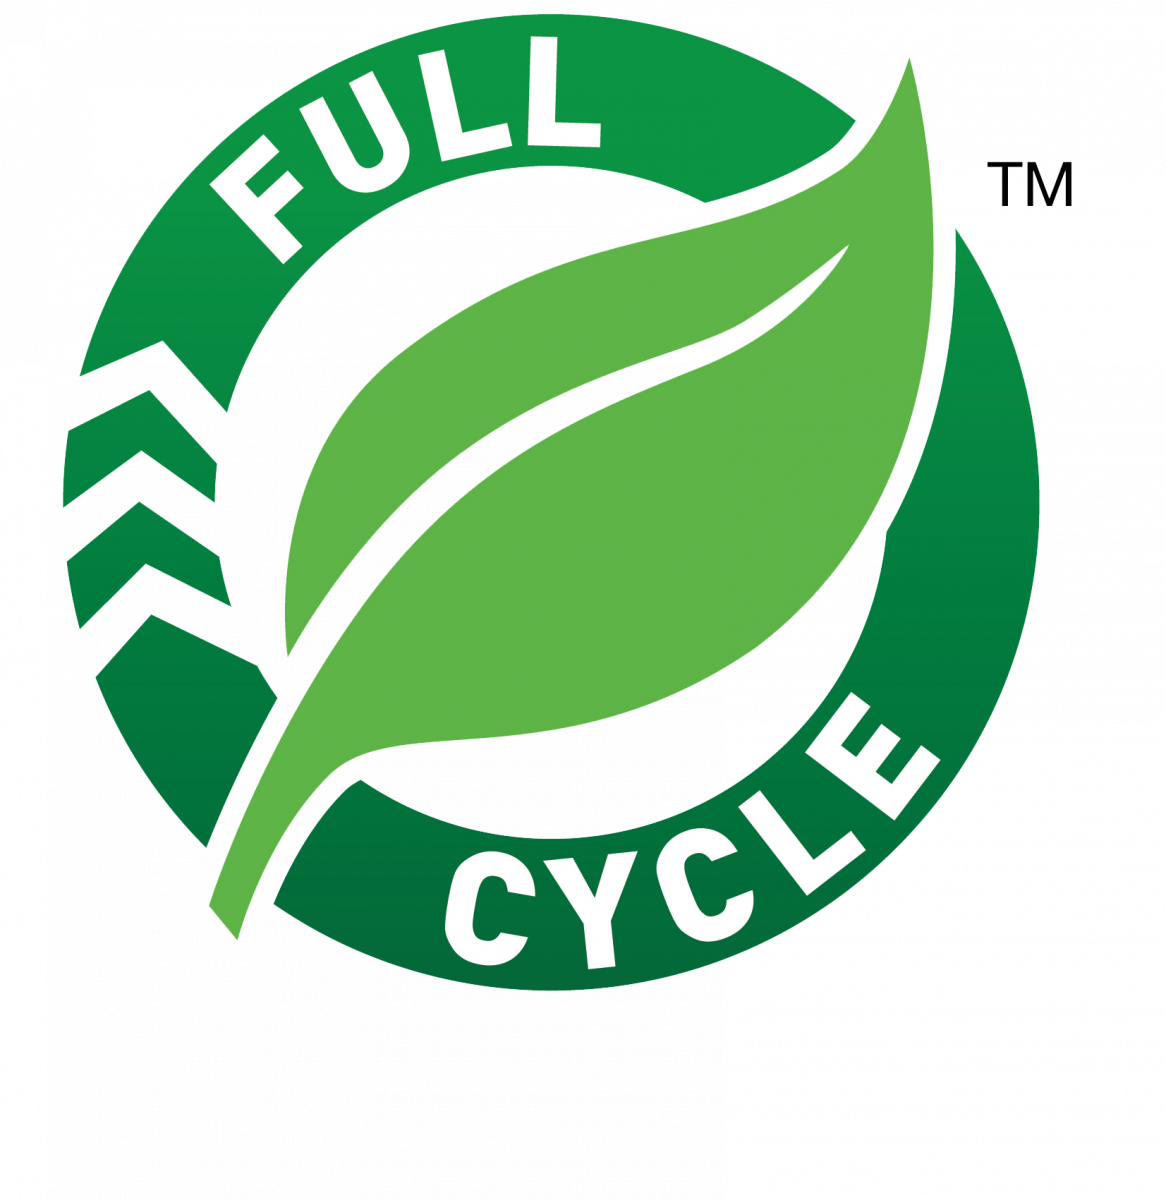 New educational floor pad videos now on sss mobile coach app the full story on sss full cycle an overview video that goes into how full cycle pads are created using recycled materials and how those same materials biocorpaavc